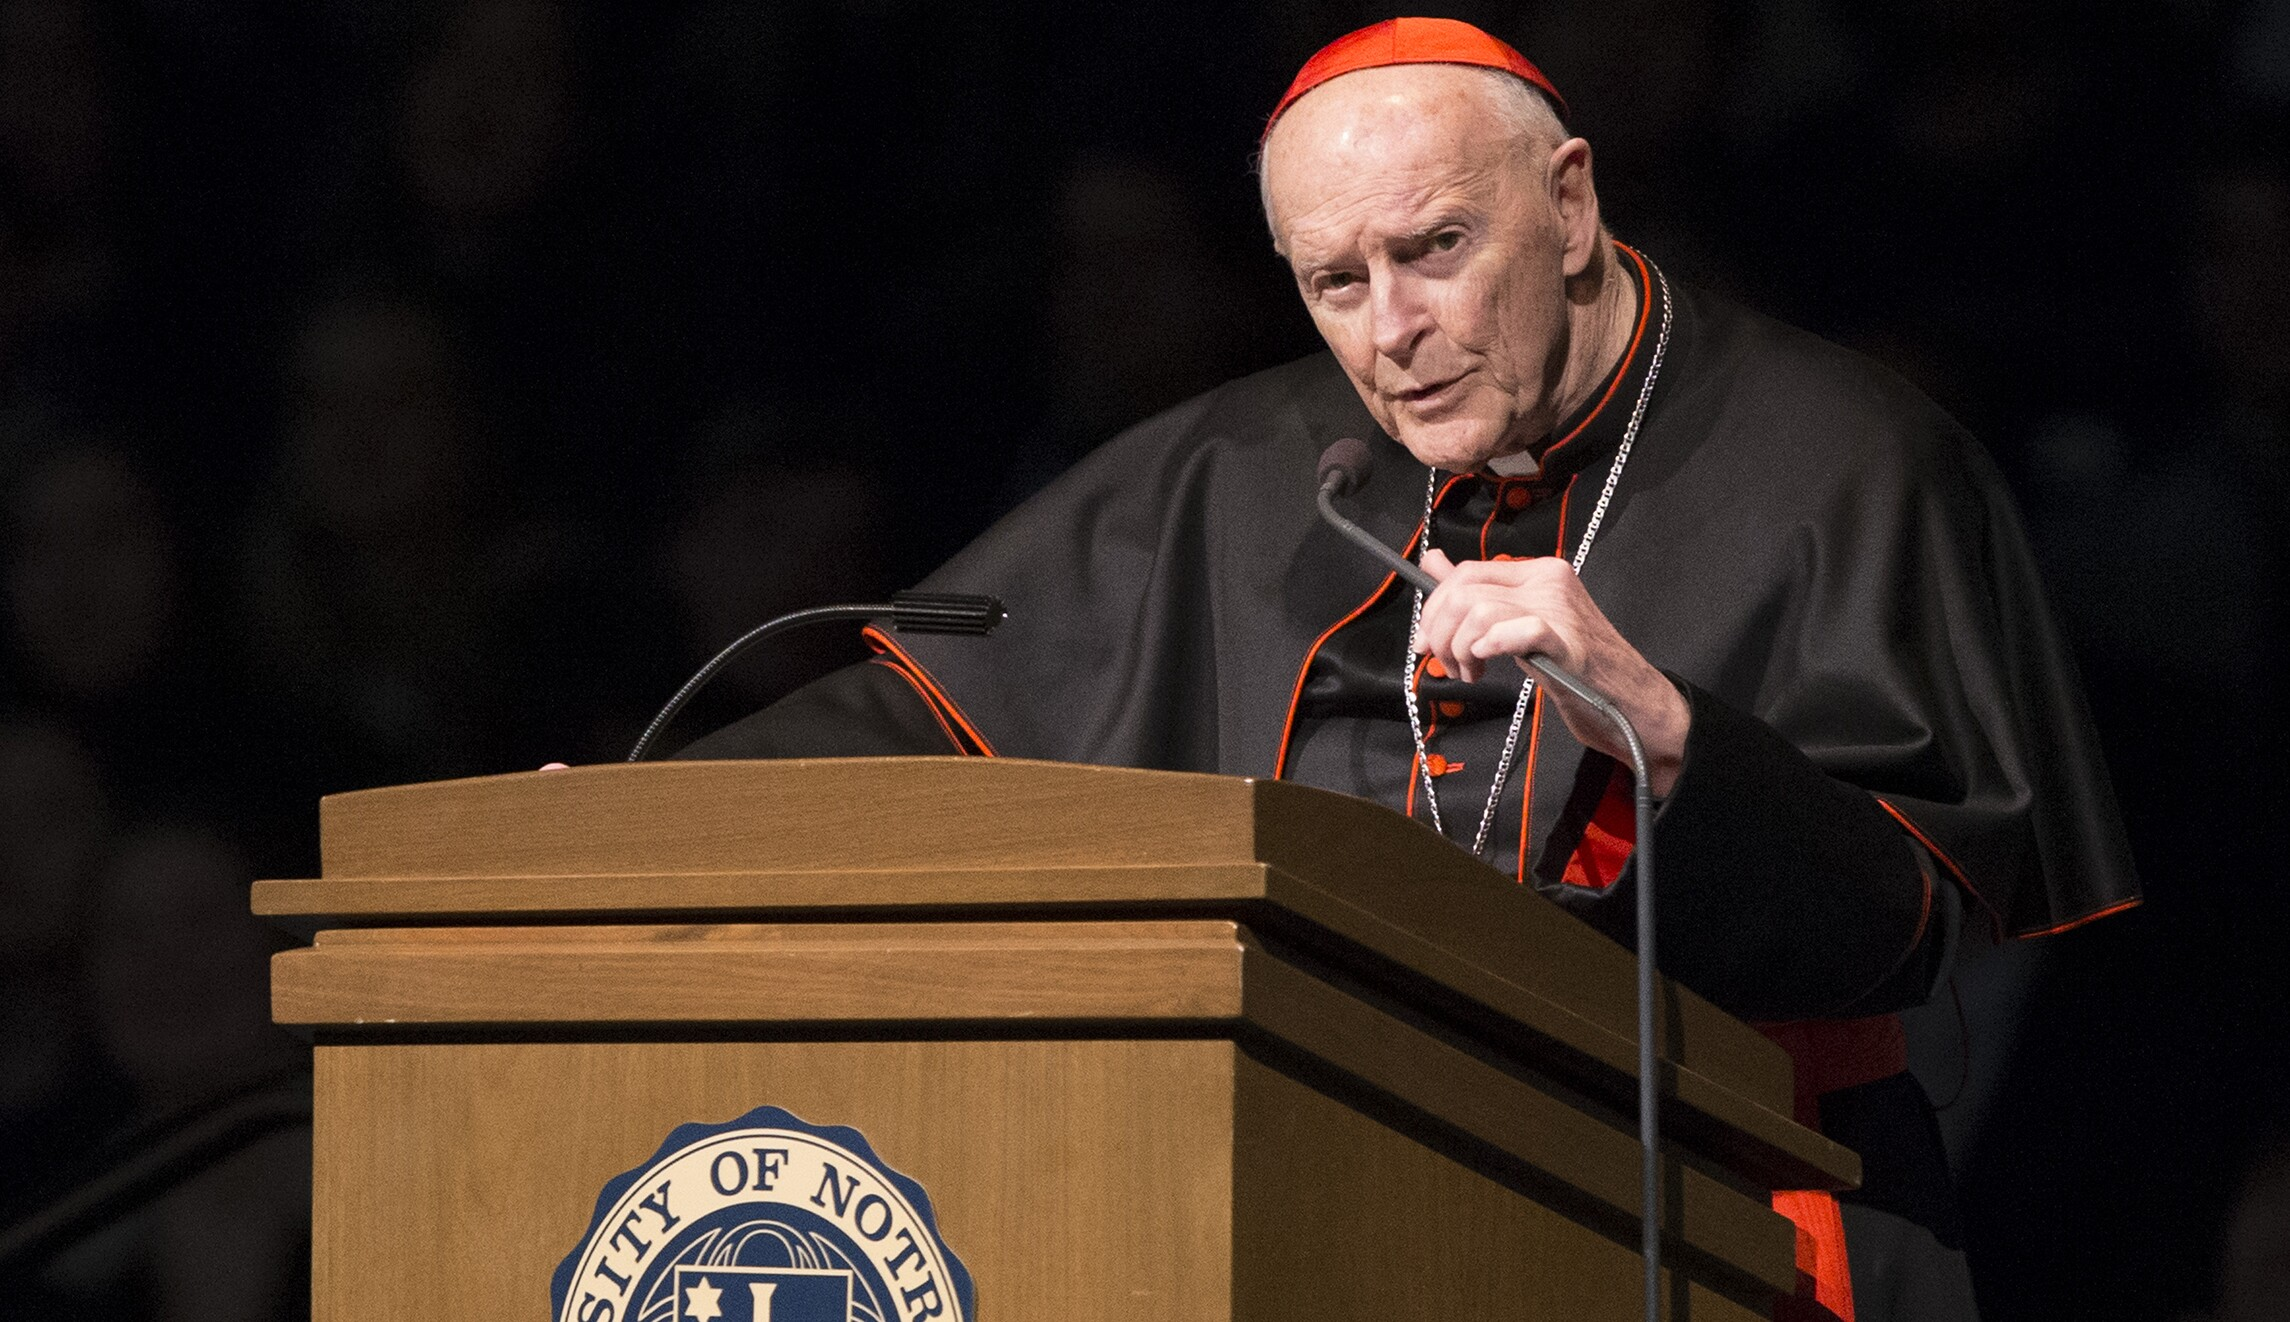 Cardinal Theodore McCarrick, facing sex abuse allegation ... Theodore Mccarrick